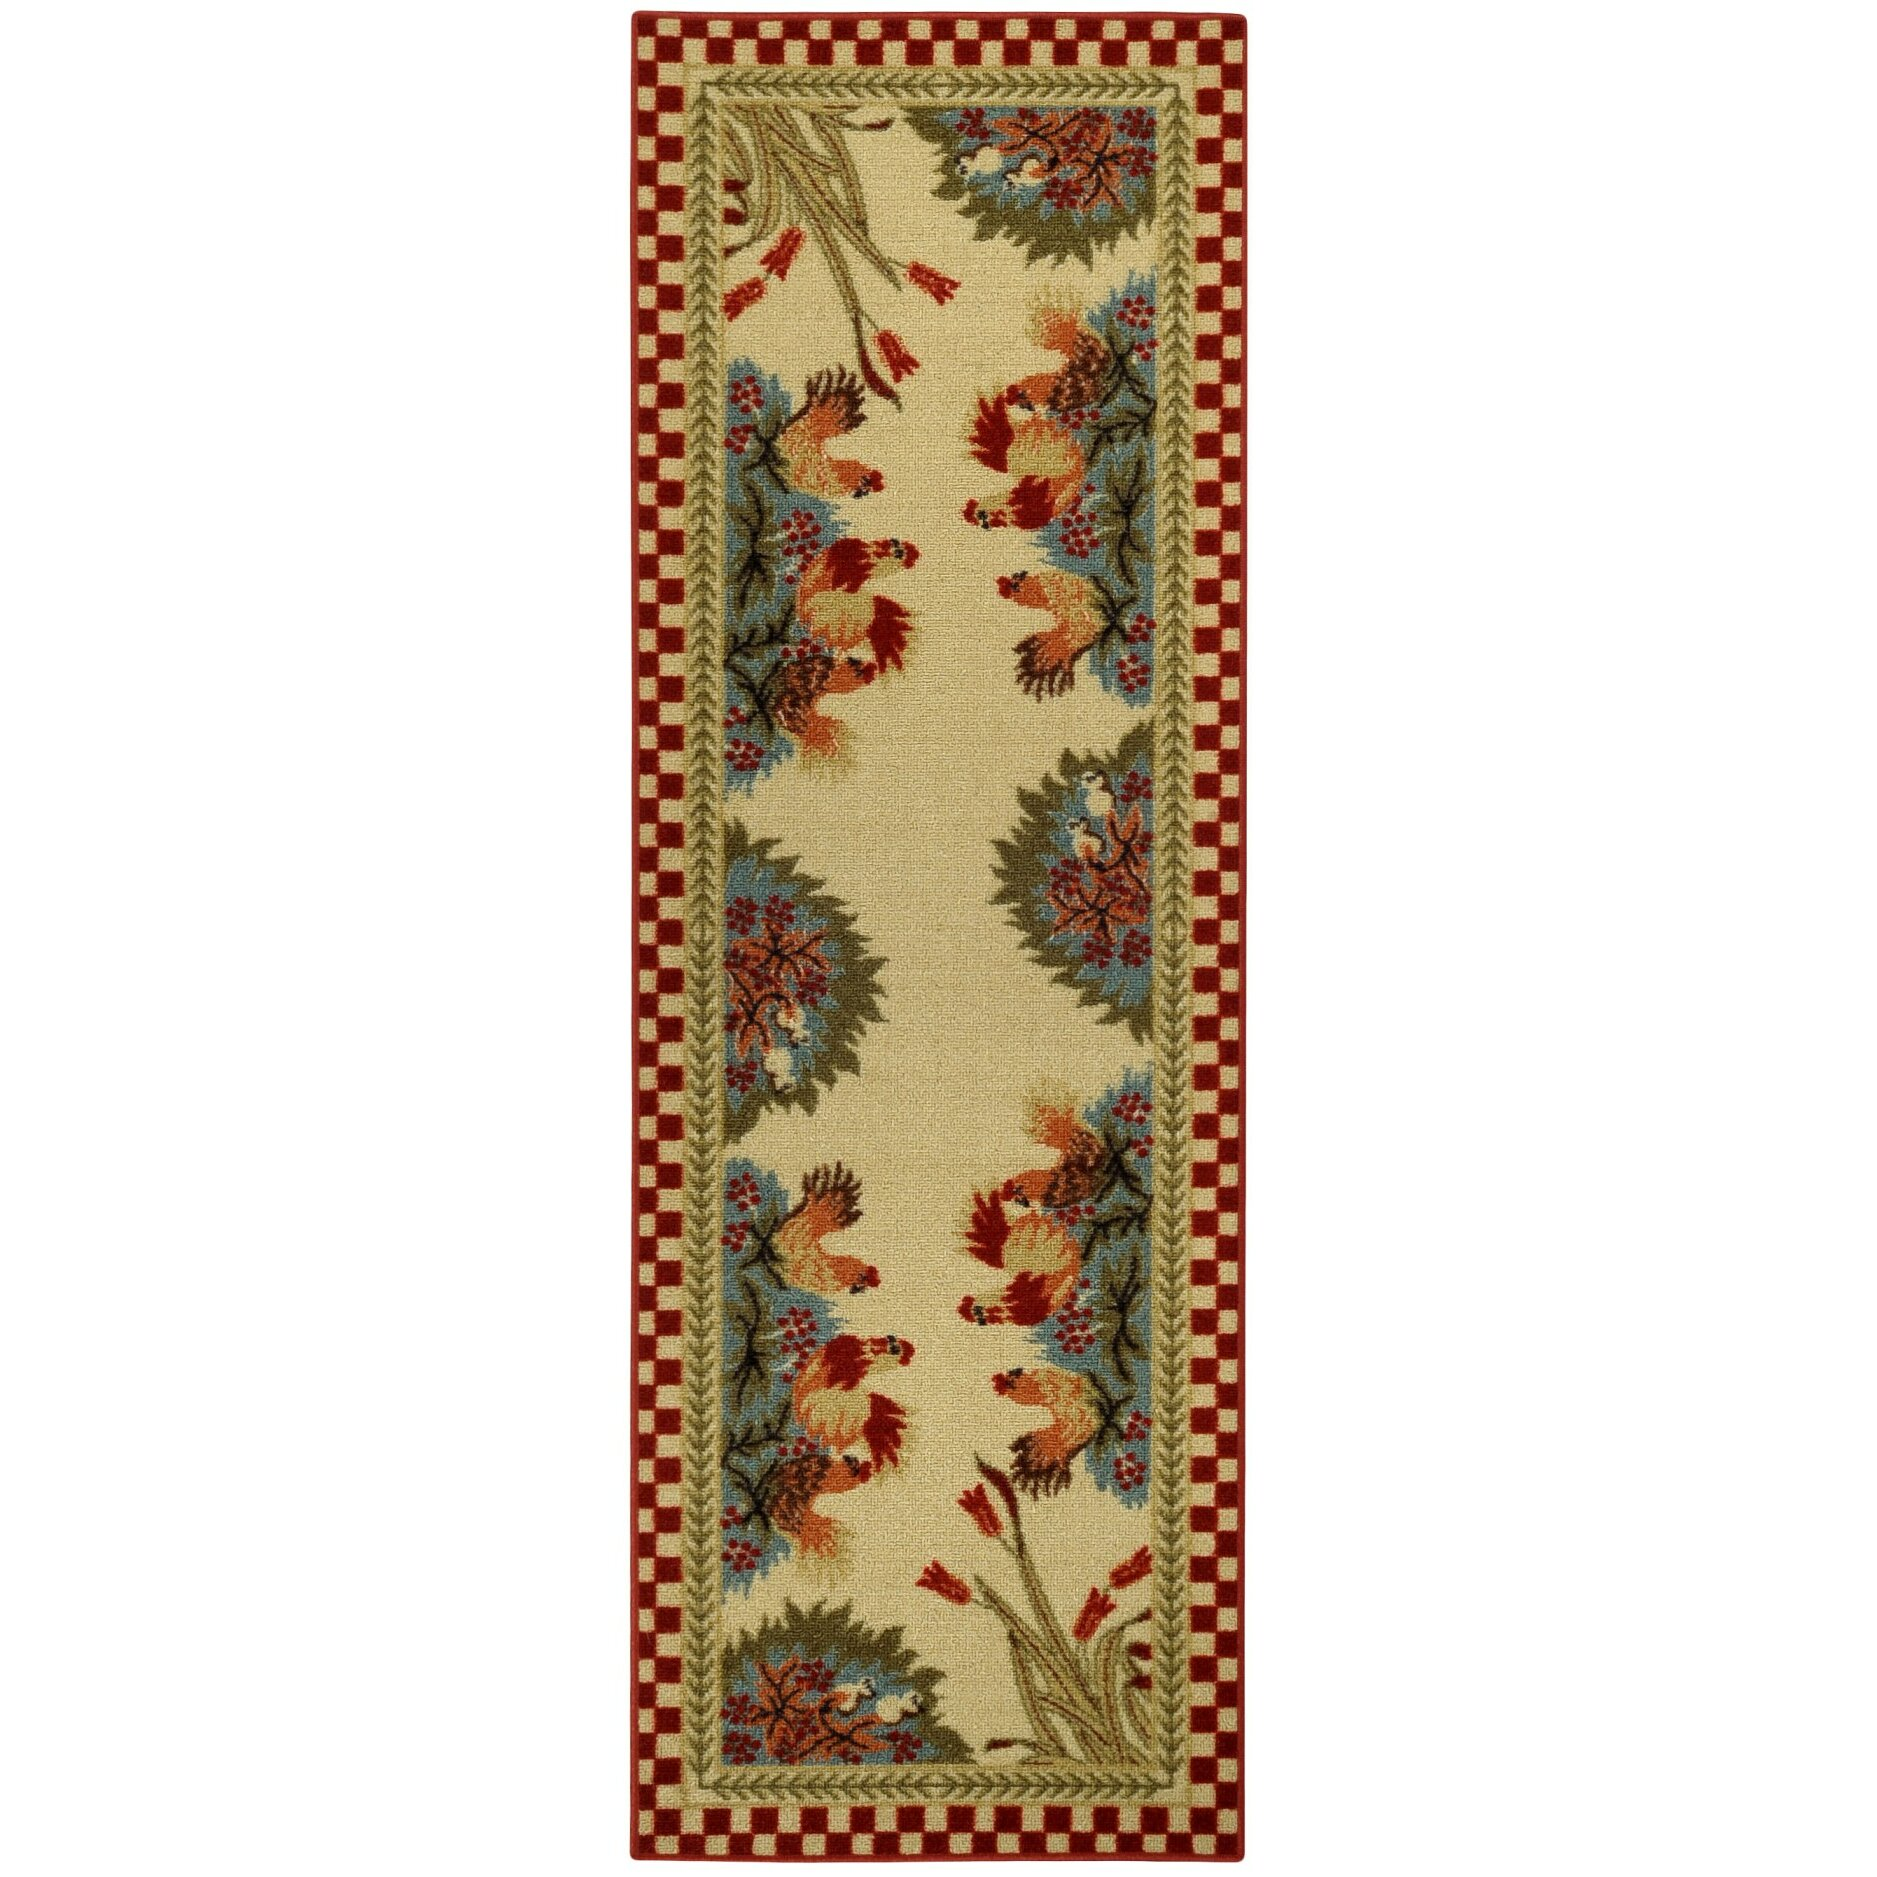 Rooster Area Rugs Kitchen Rugnur Cucina Rooster Checkered Cream Red Kitchen Area Rug